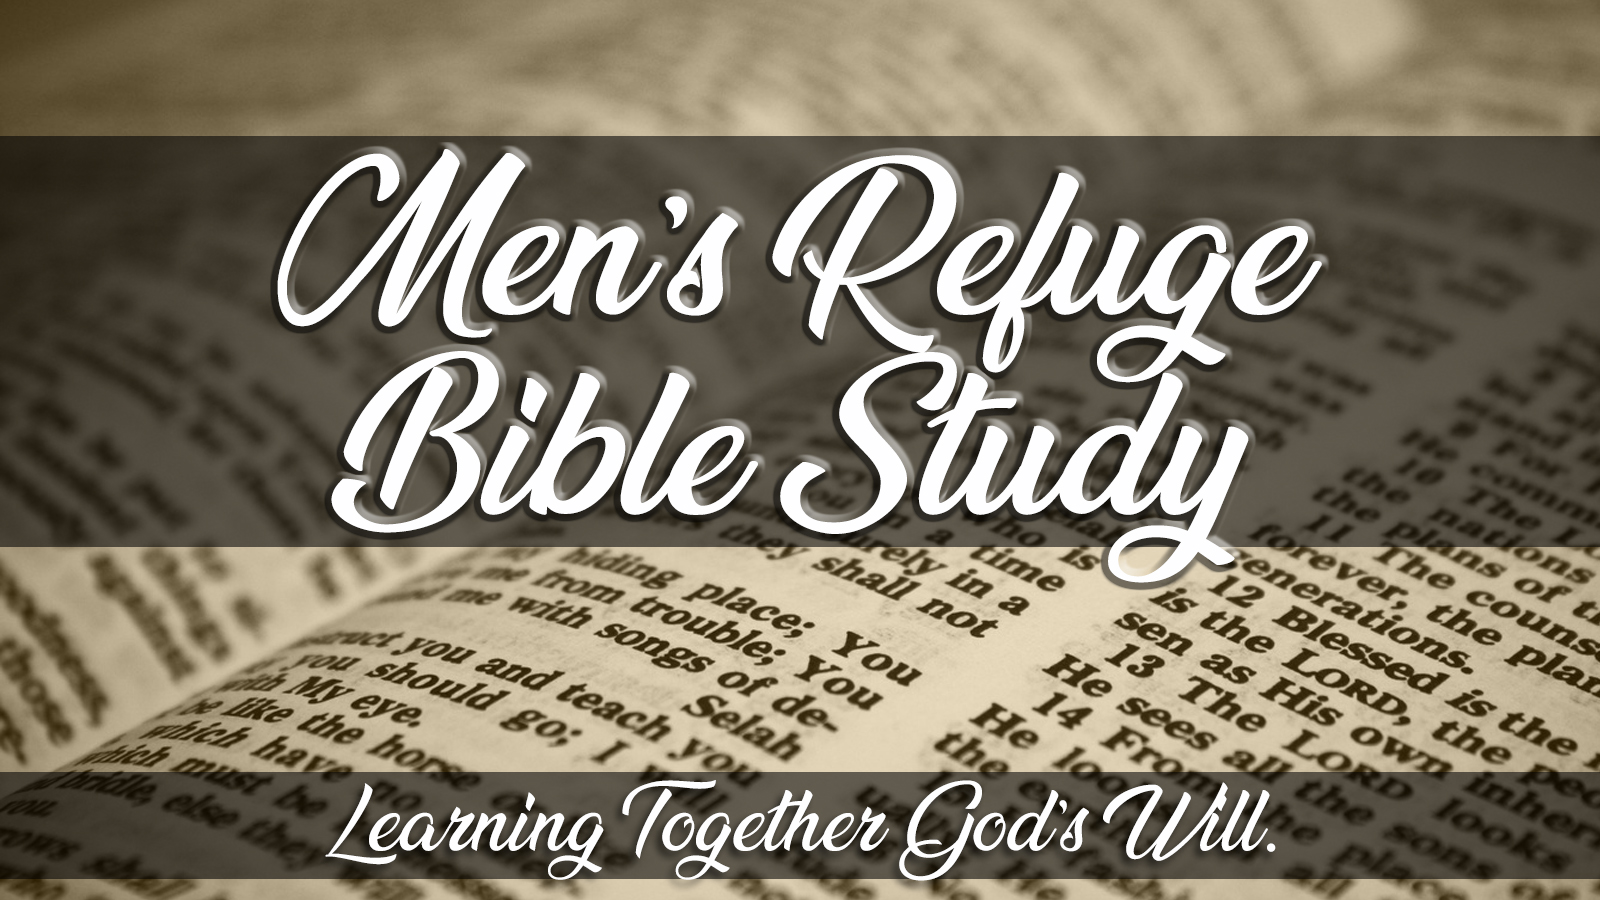 Learning together God's word. Every Wednesday 6:30pm @ Refuge Contact: Dean 843-635-3682